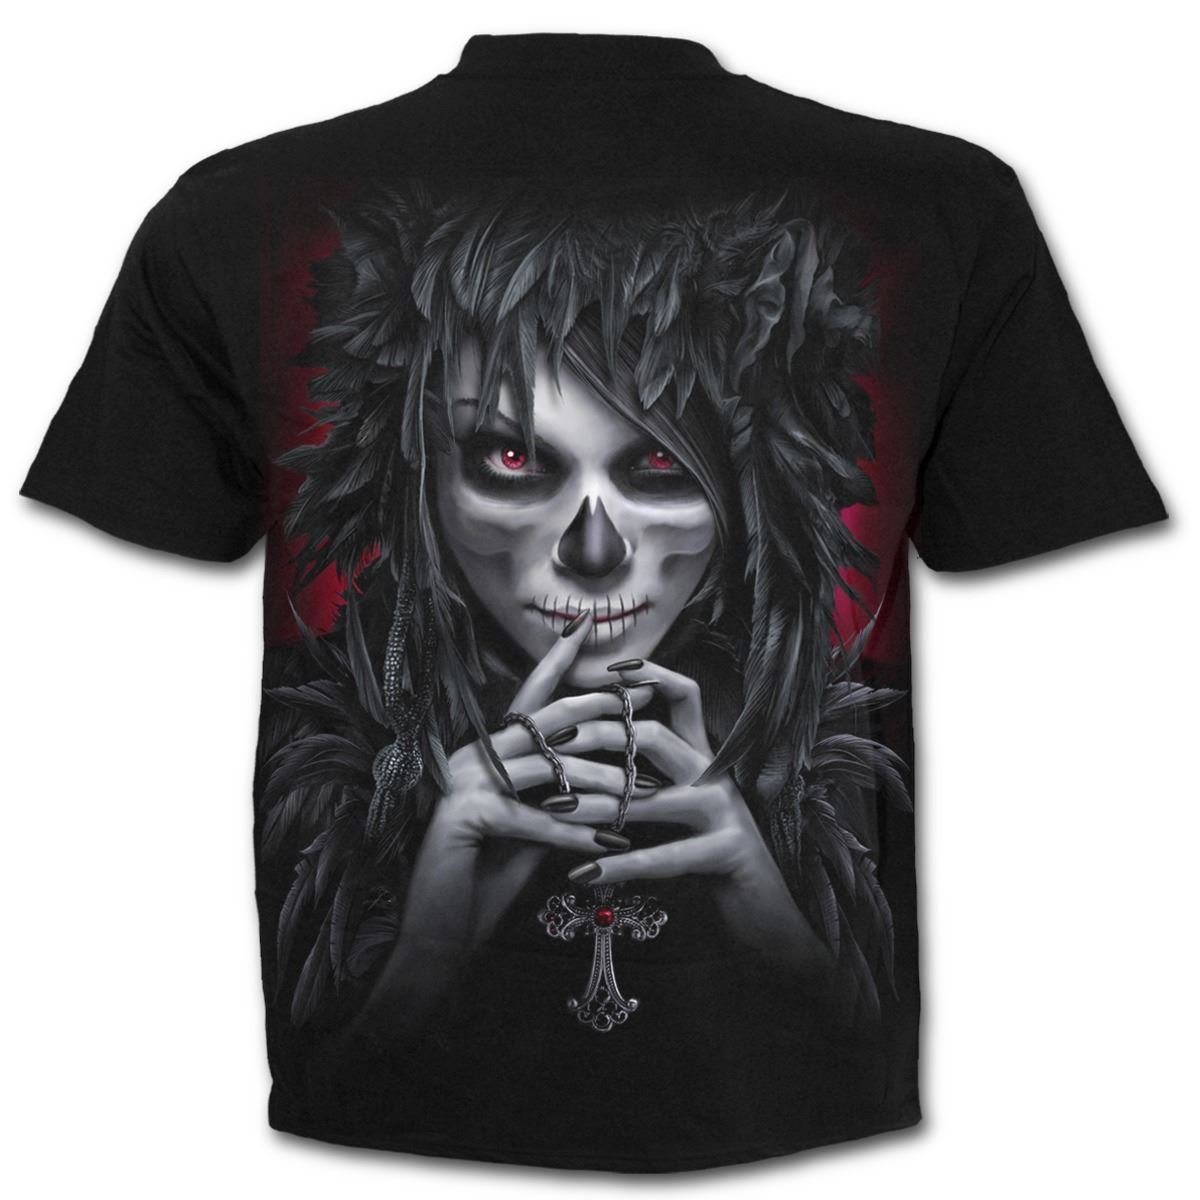 Spiral-Direct-Day-Of-The-Goth-Skeleton-Zombie-Black-Short-Sleeved-T-Shirt thumbnail 12